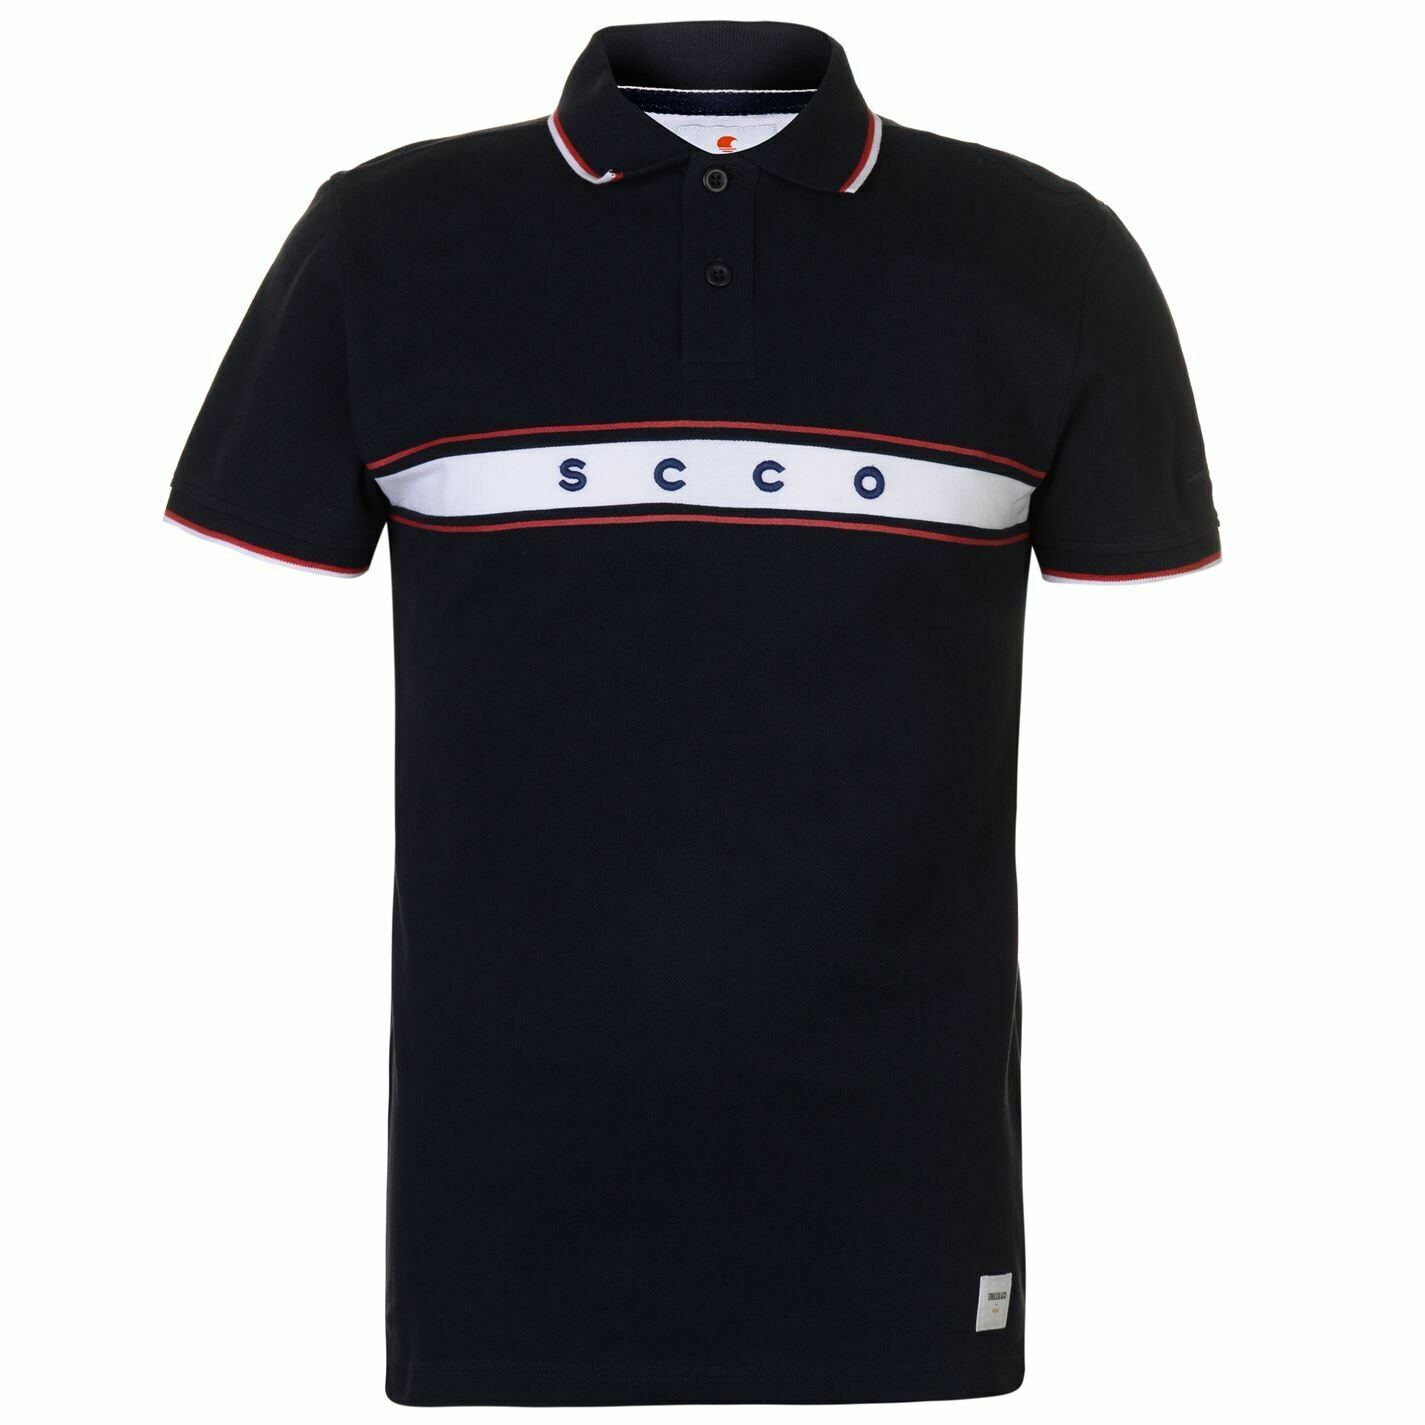 SoulCal Kids Boys Signature Polo Junior Shirt Classic Fit Tee Top Short Sleeve